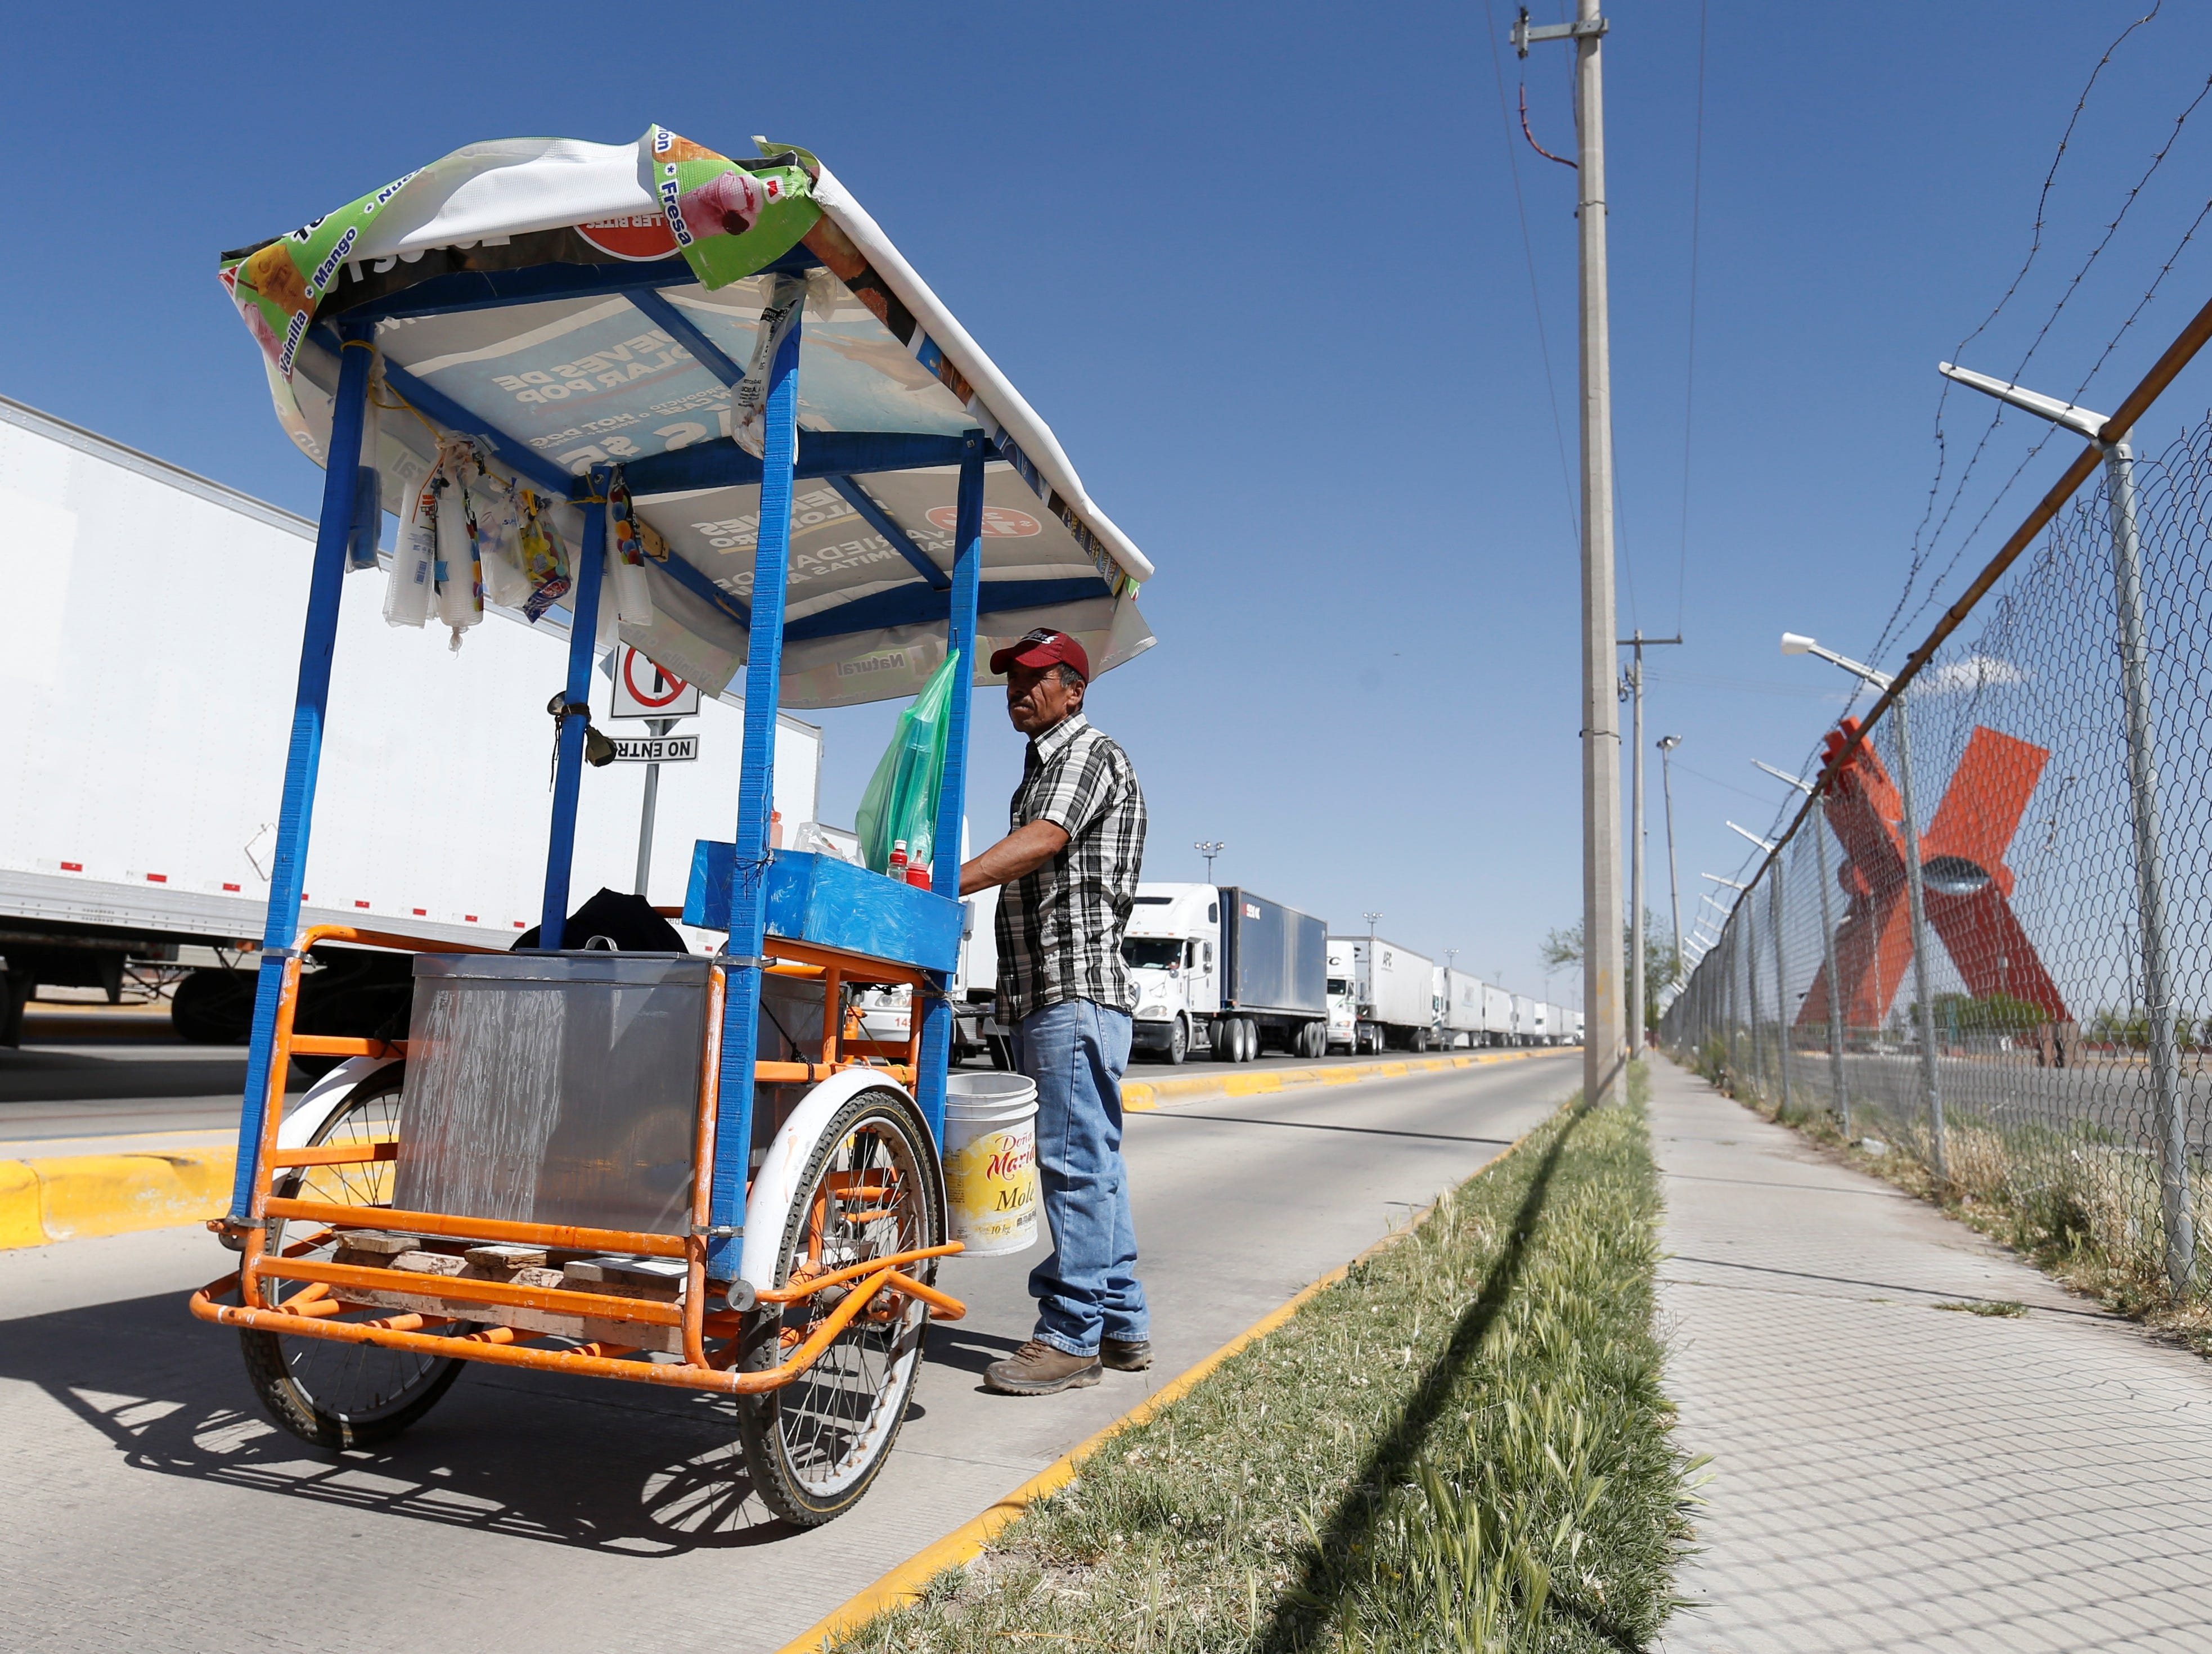 Street food vendors feed commercial truck drivers as they wait to cross the U.S.-Mexico border.